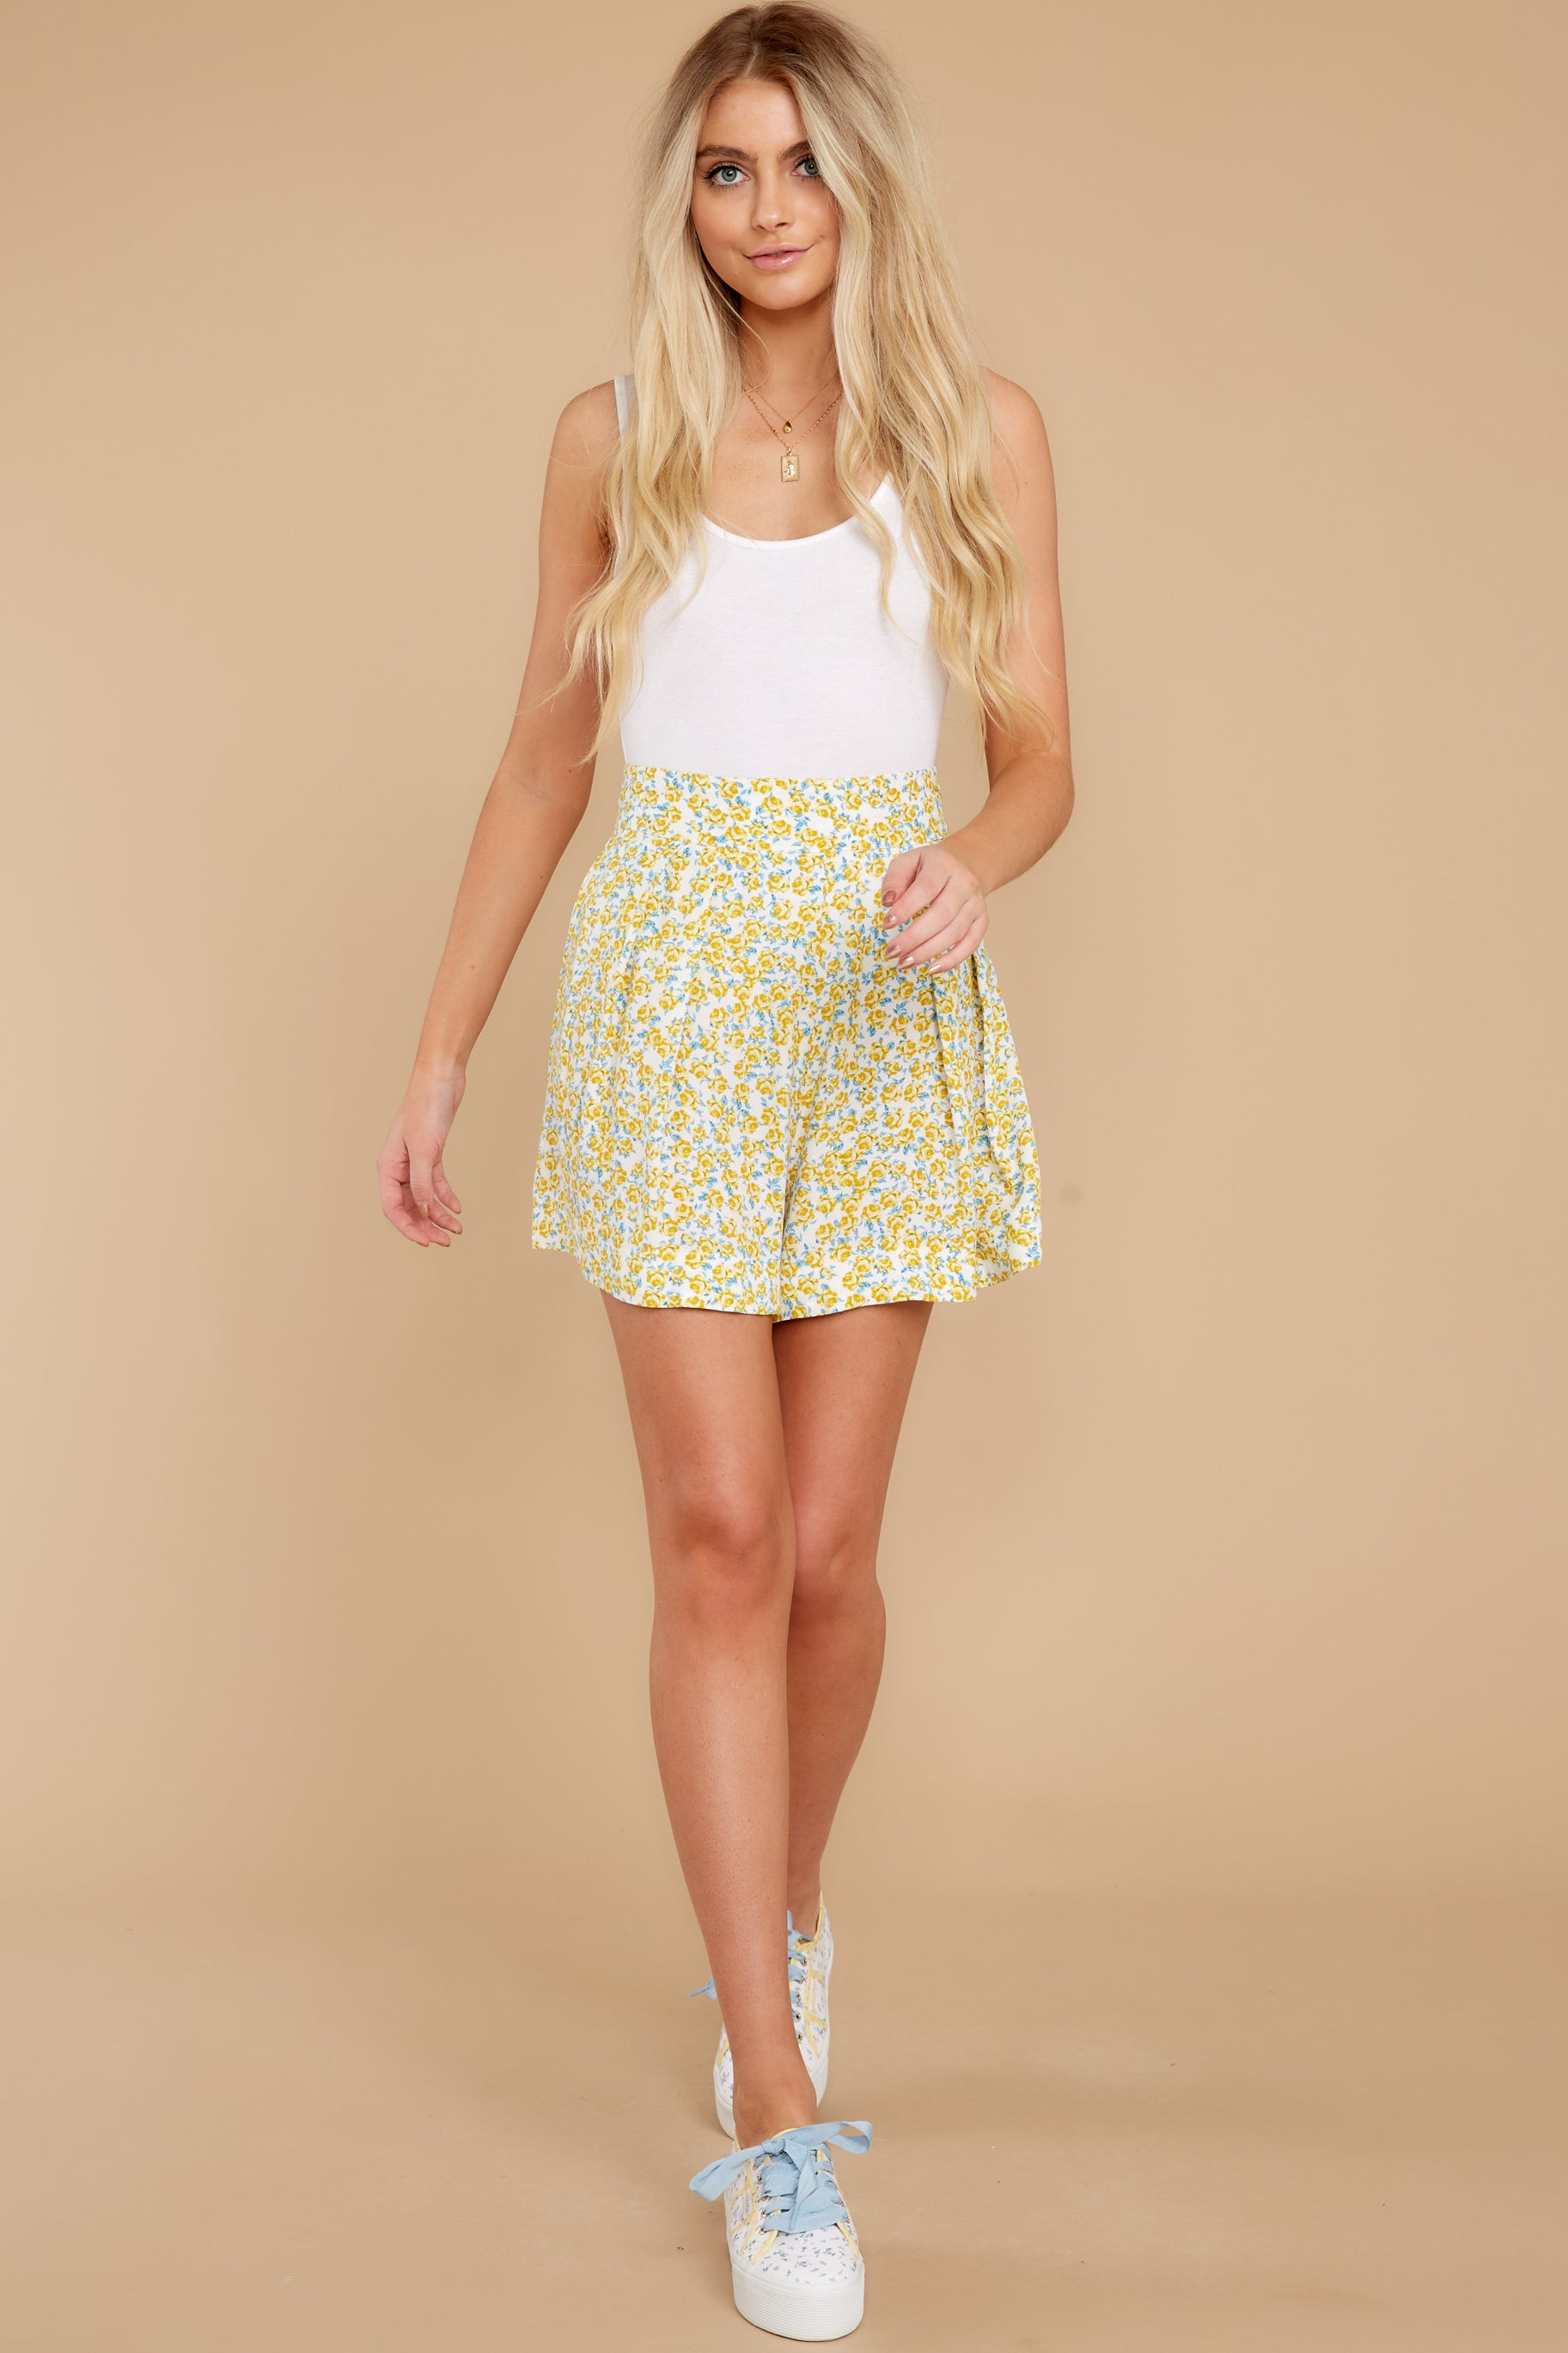 4 My Flawless Yellow Floral Print Skirt at reddress.com